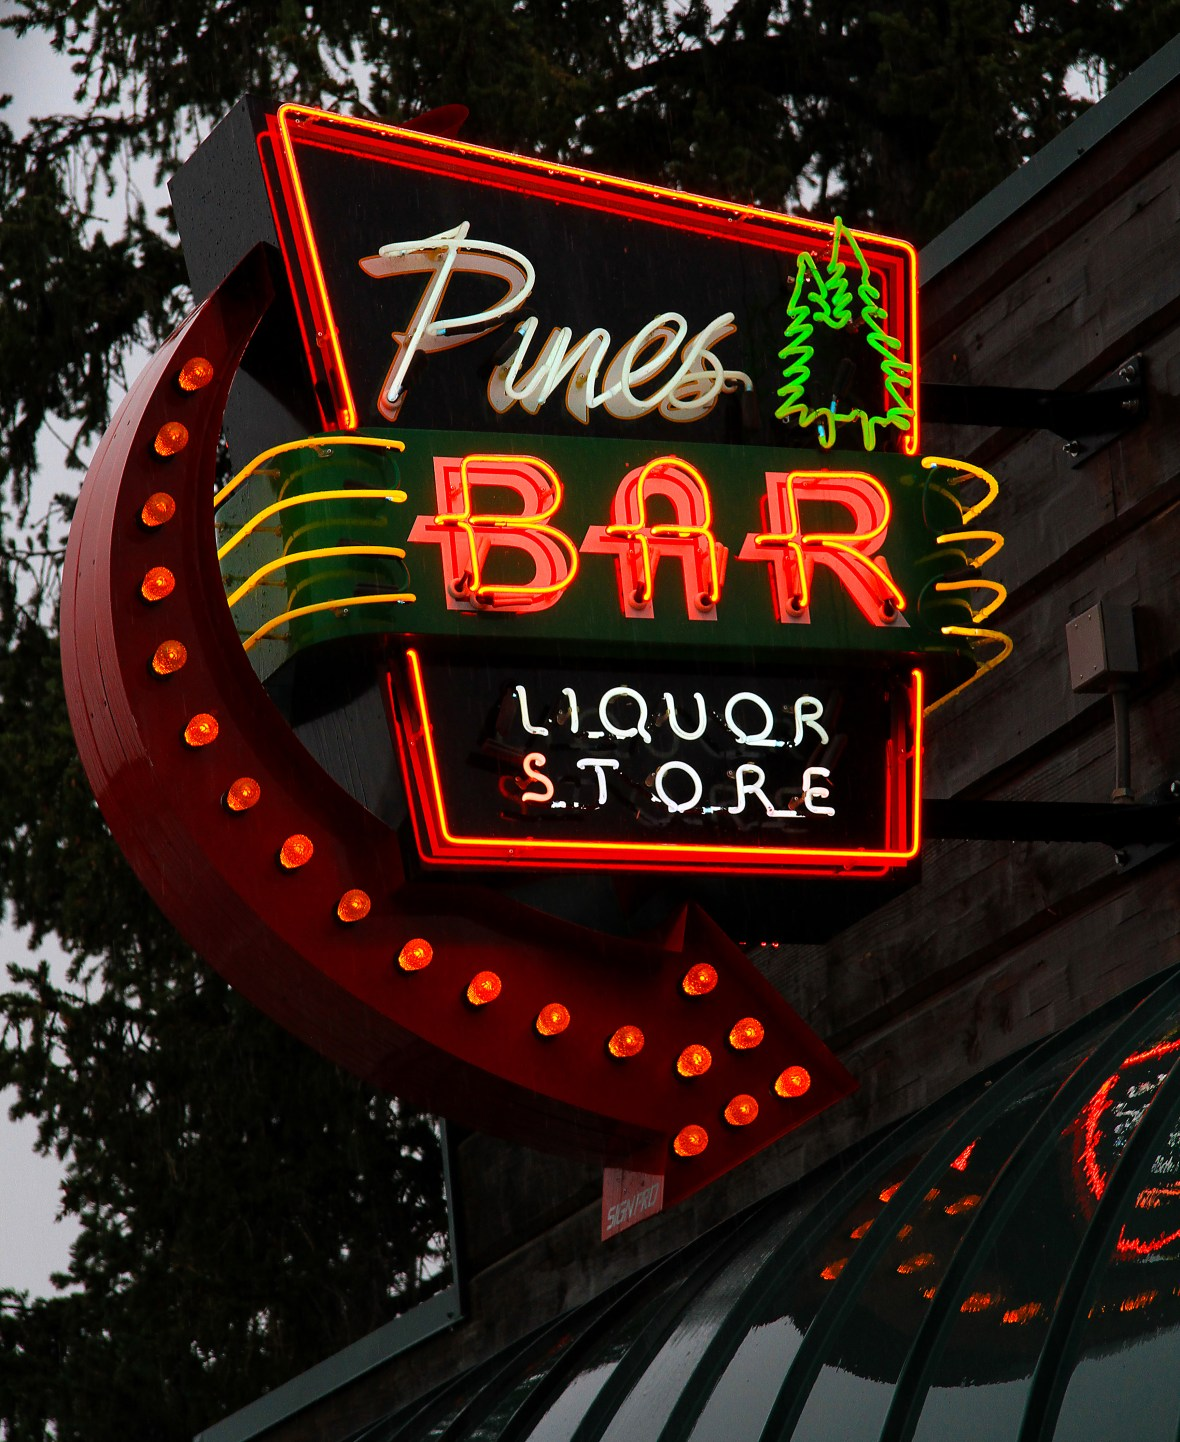 Pines Bar - 260 North Main Street, Thayne, Wyoming U.S.A. - August 22, 2018